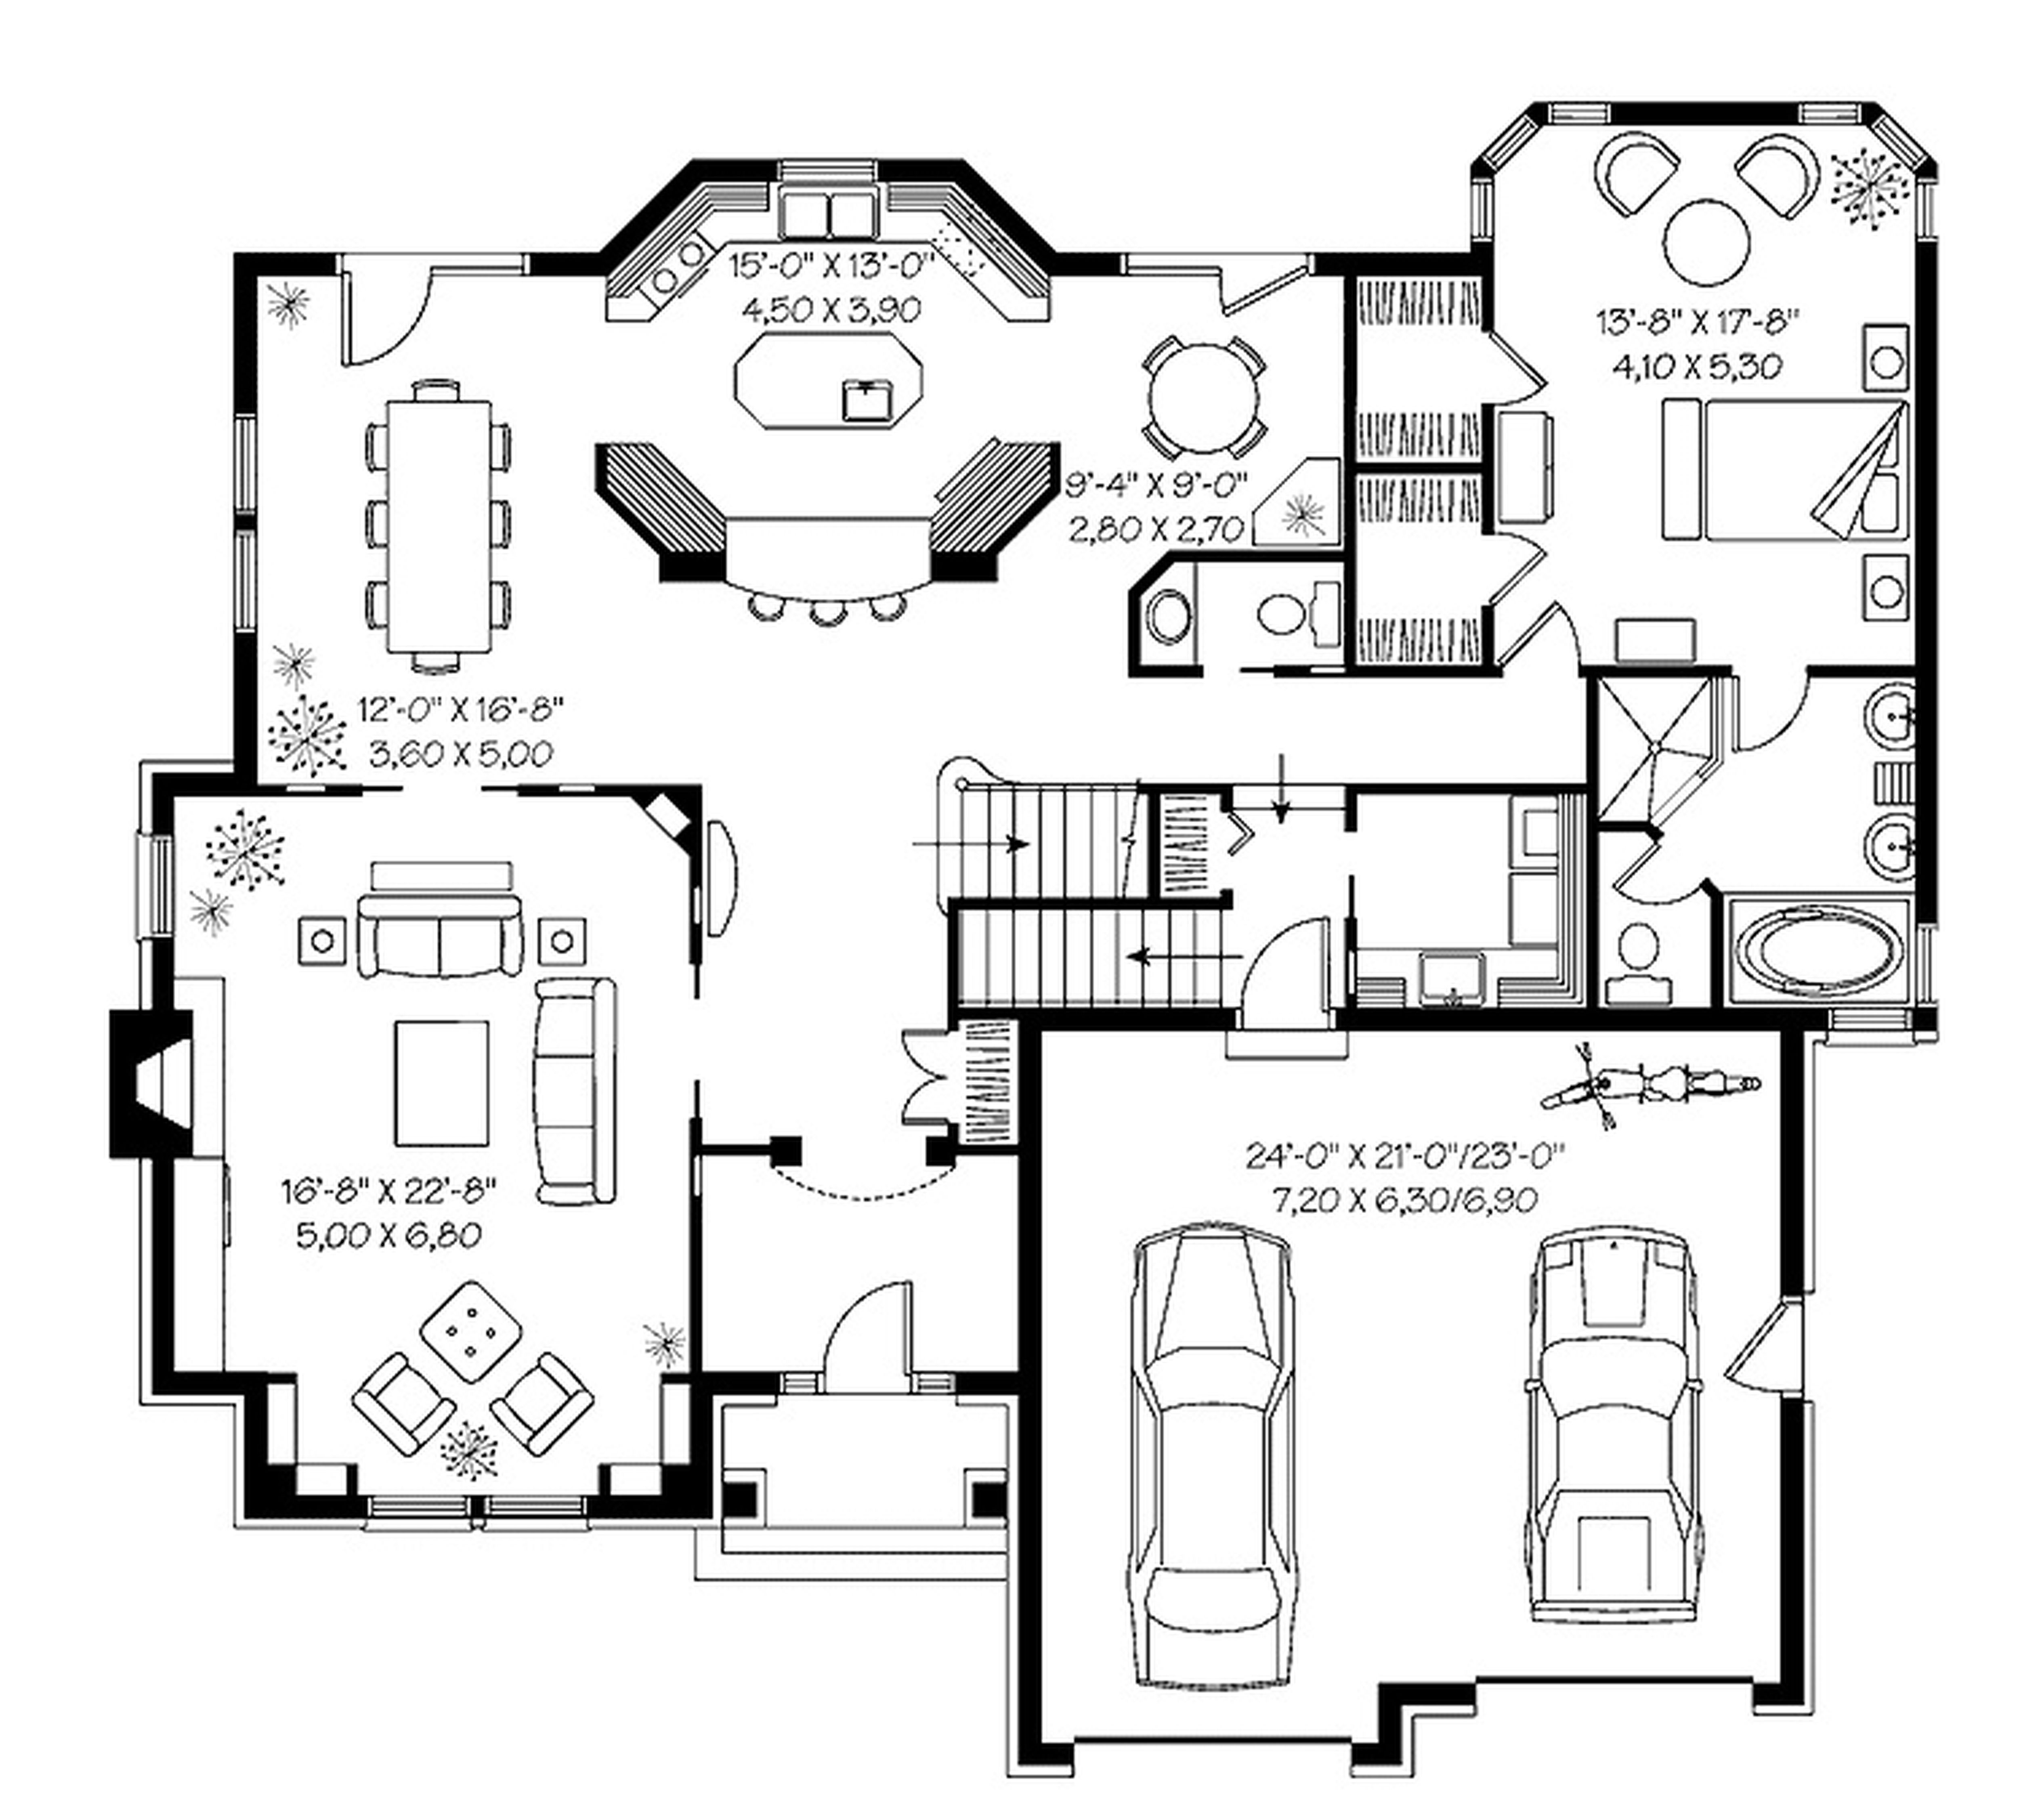 Minecraft Simple Modern House Designs: 10 Awesomely Simple Modern House Plans (Dengan Gambar